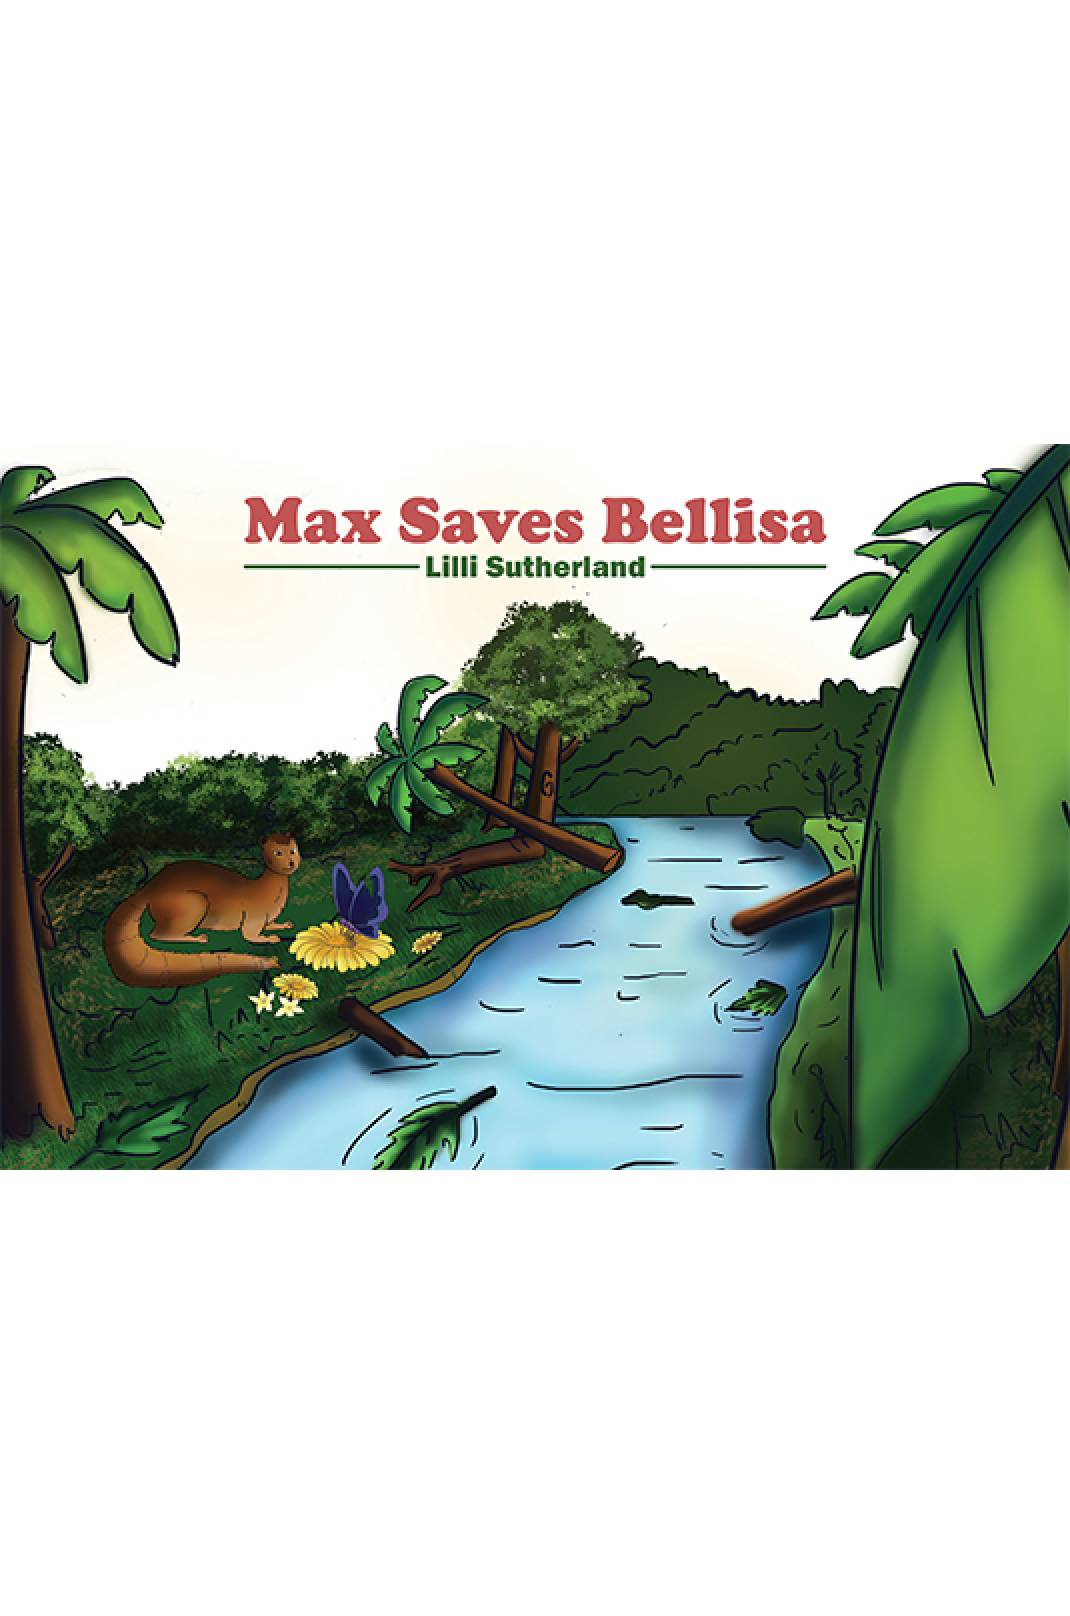 Max Saves Bellisa